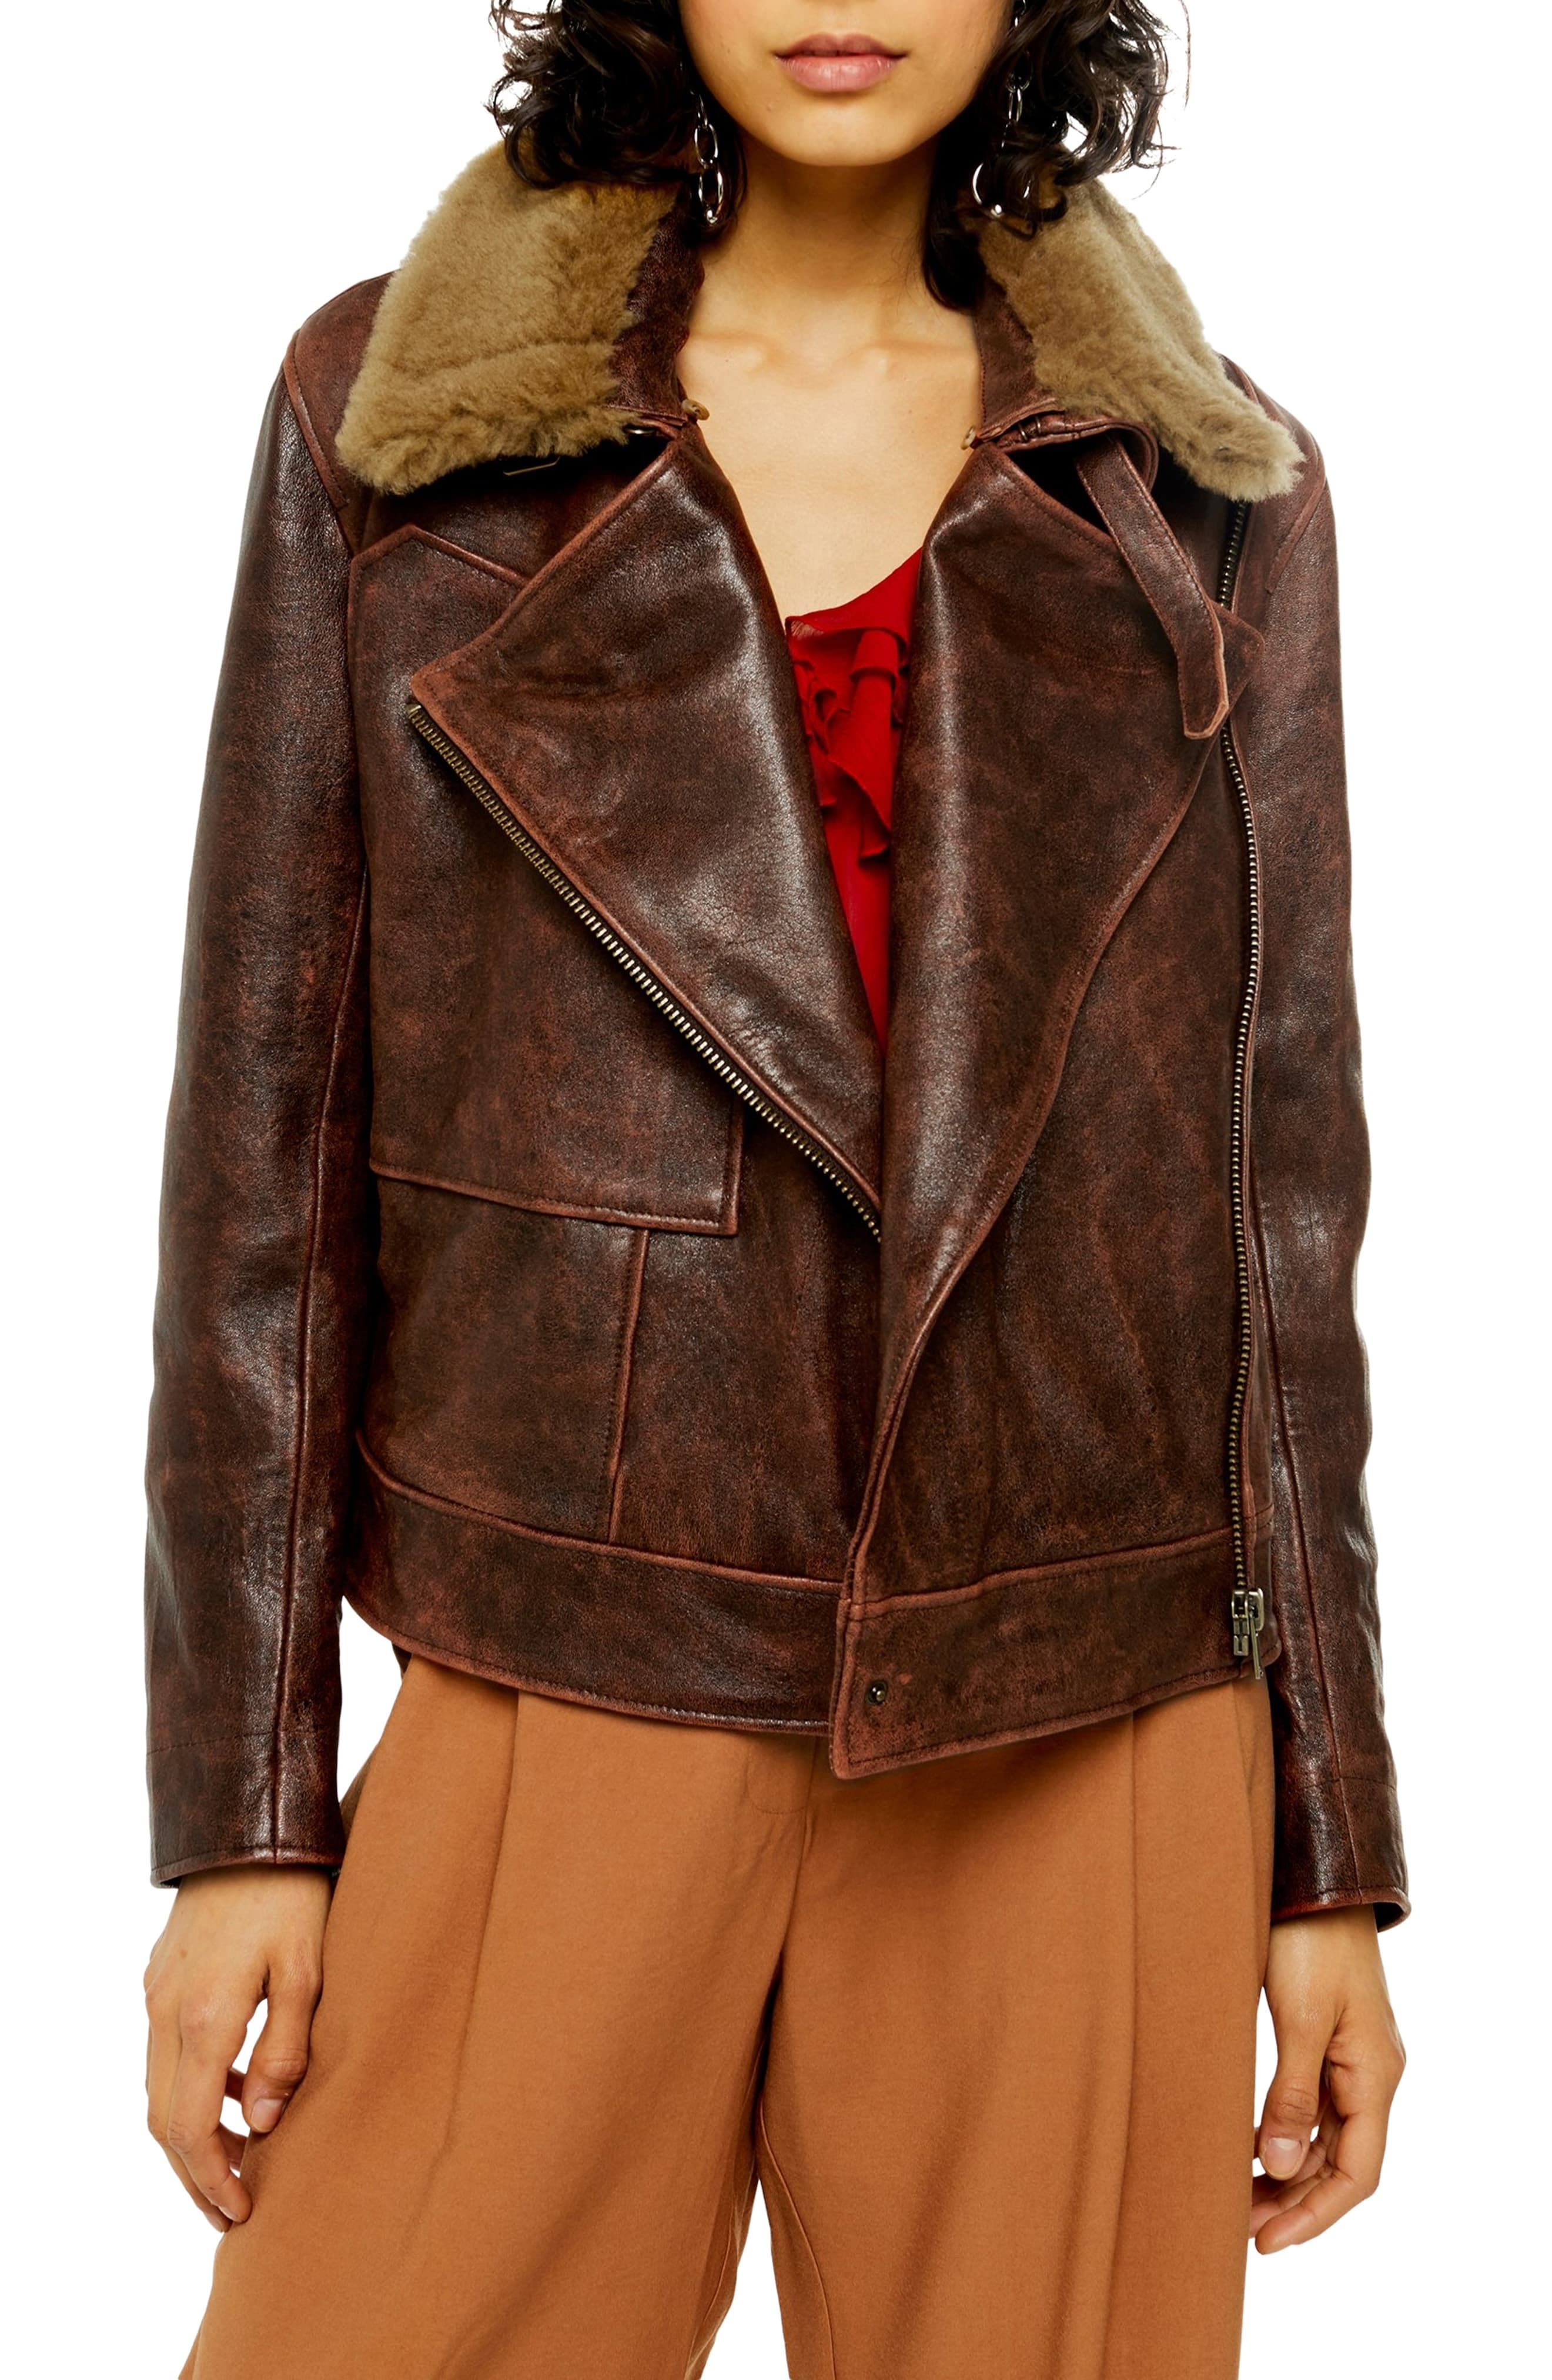 Women's Shearling Collar Leather Jacket, Size 4 US